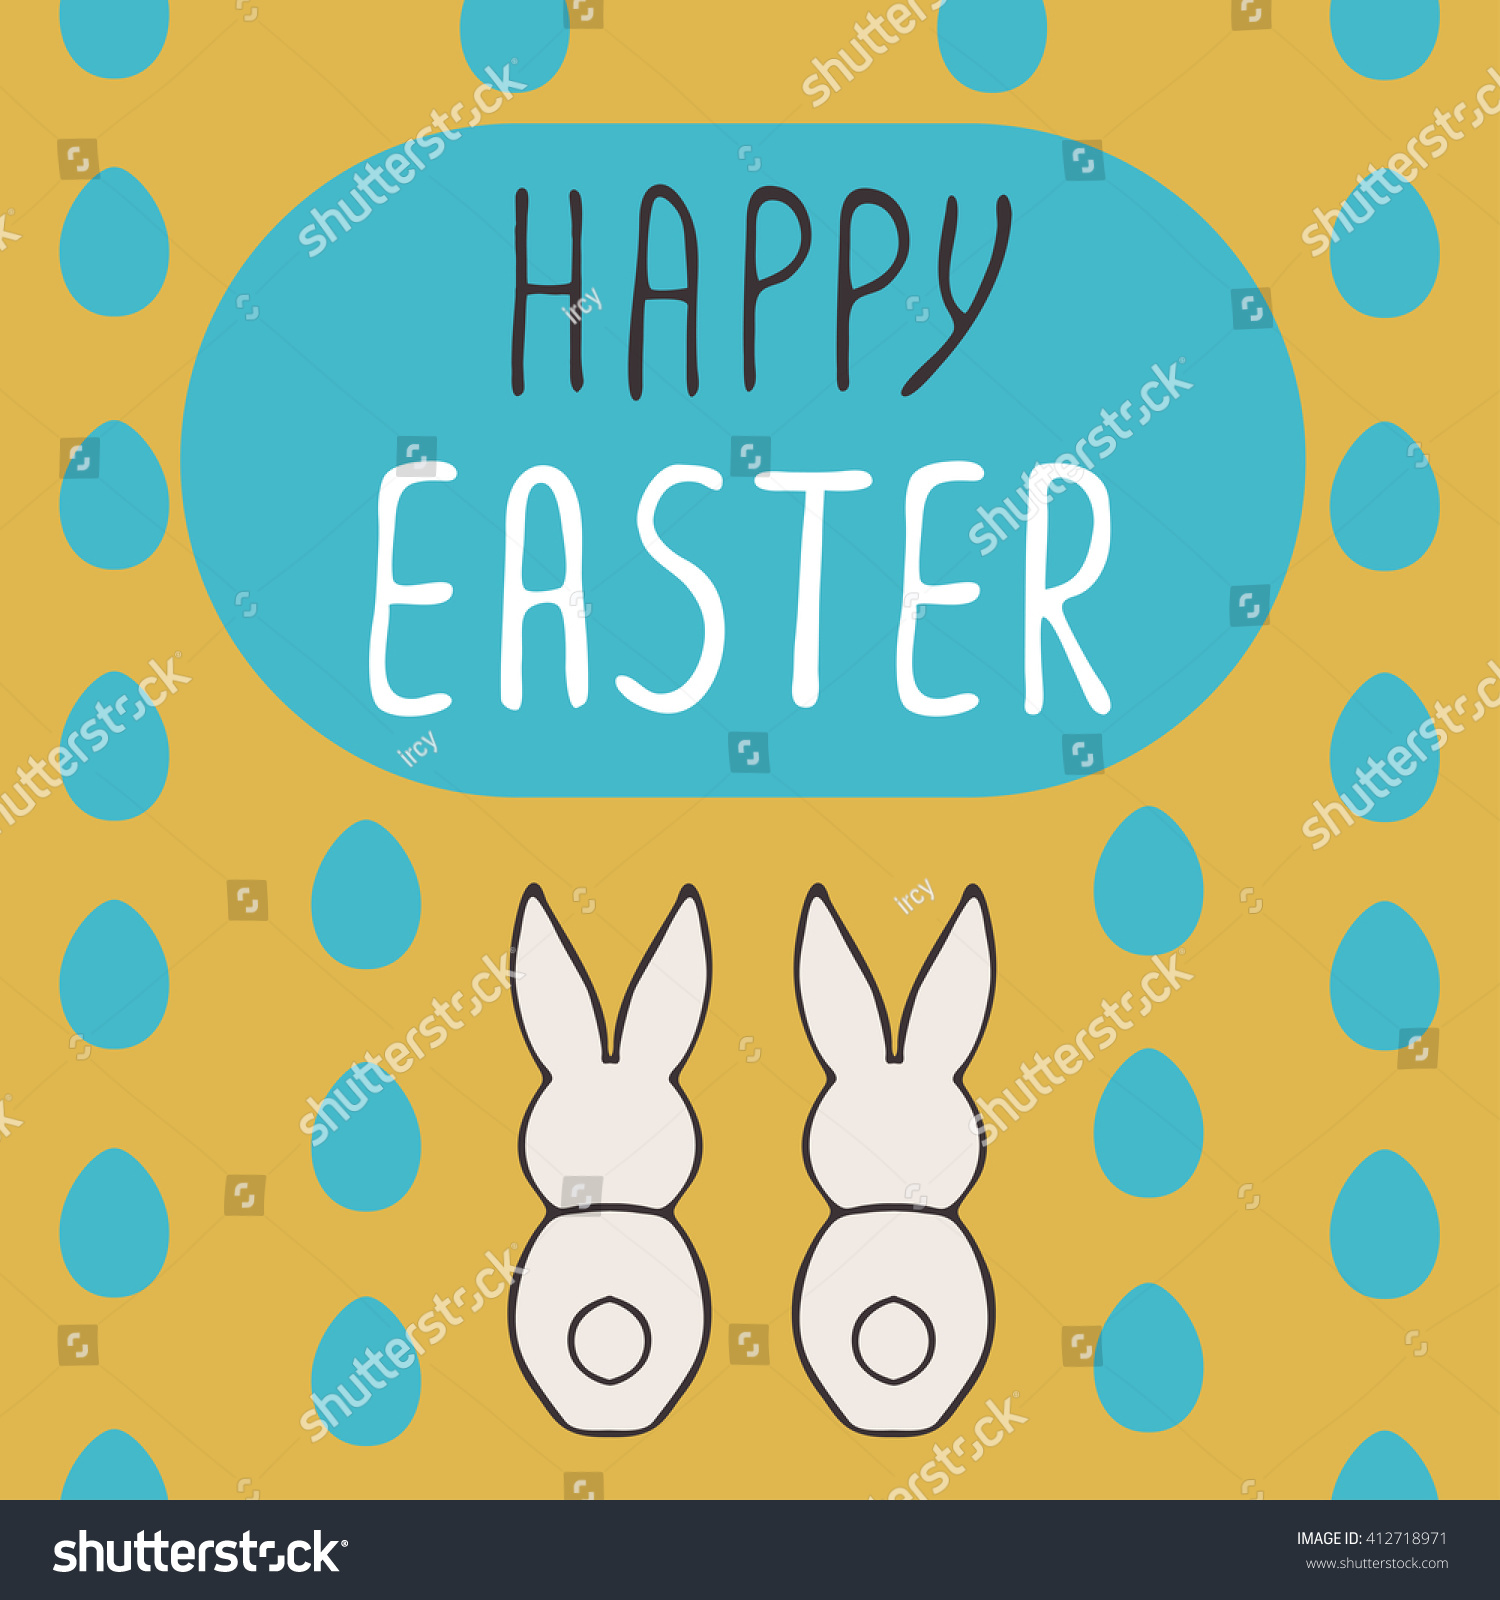 Easter Greeting Cards Hand Drawn Illustation Holiday Symbol Ez